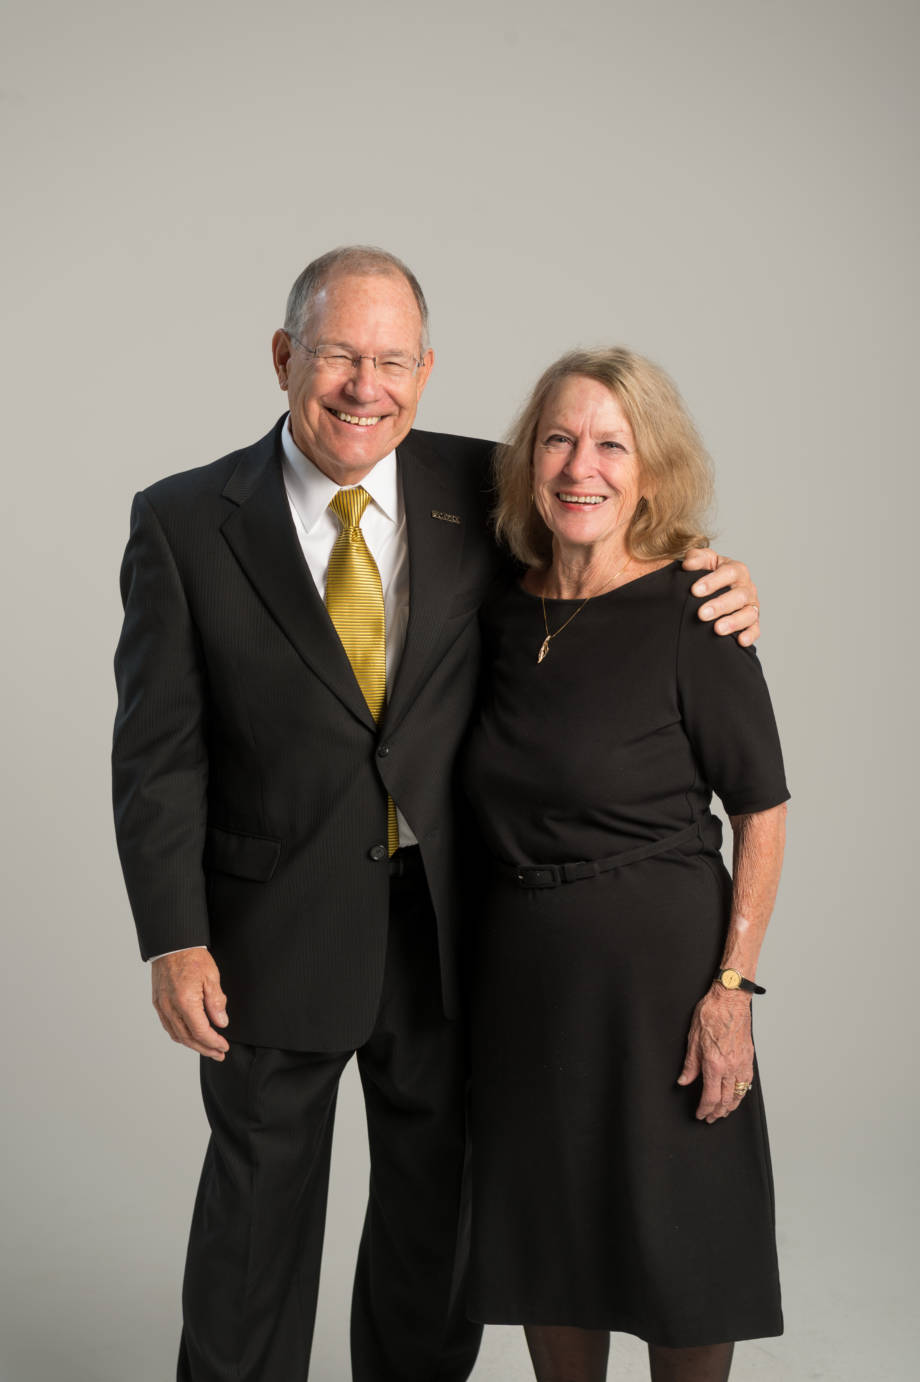 CAFNR Dean Tom Payne and his wife, Alice, have worked as a team during Tom's collective time as a either a professor or administrator at Texas A&M, Virginia Tech, Ohio State and Mizzou. Photo by L.G. Patterson.